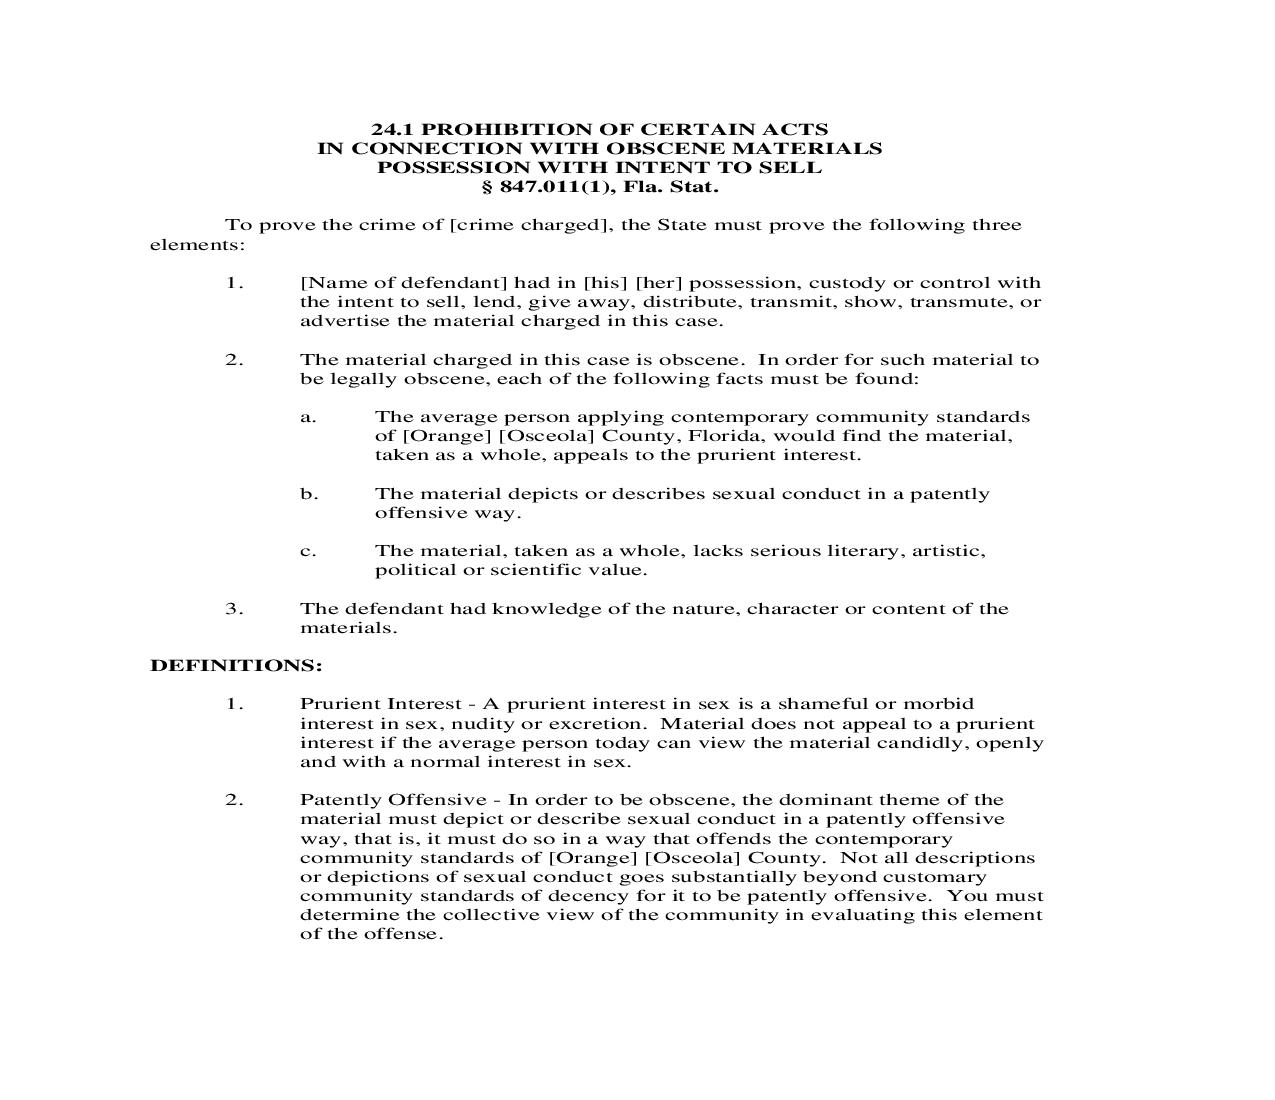 24.1. Prohibition Of Certain Acts In Connection With Obscene Materials Possession With Intent To Sell   Pdf Doc Docx   Florida_JI